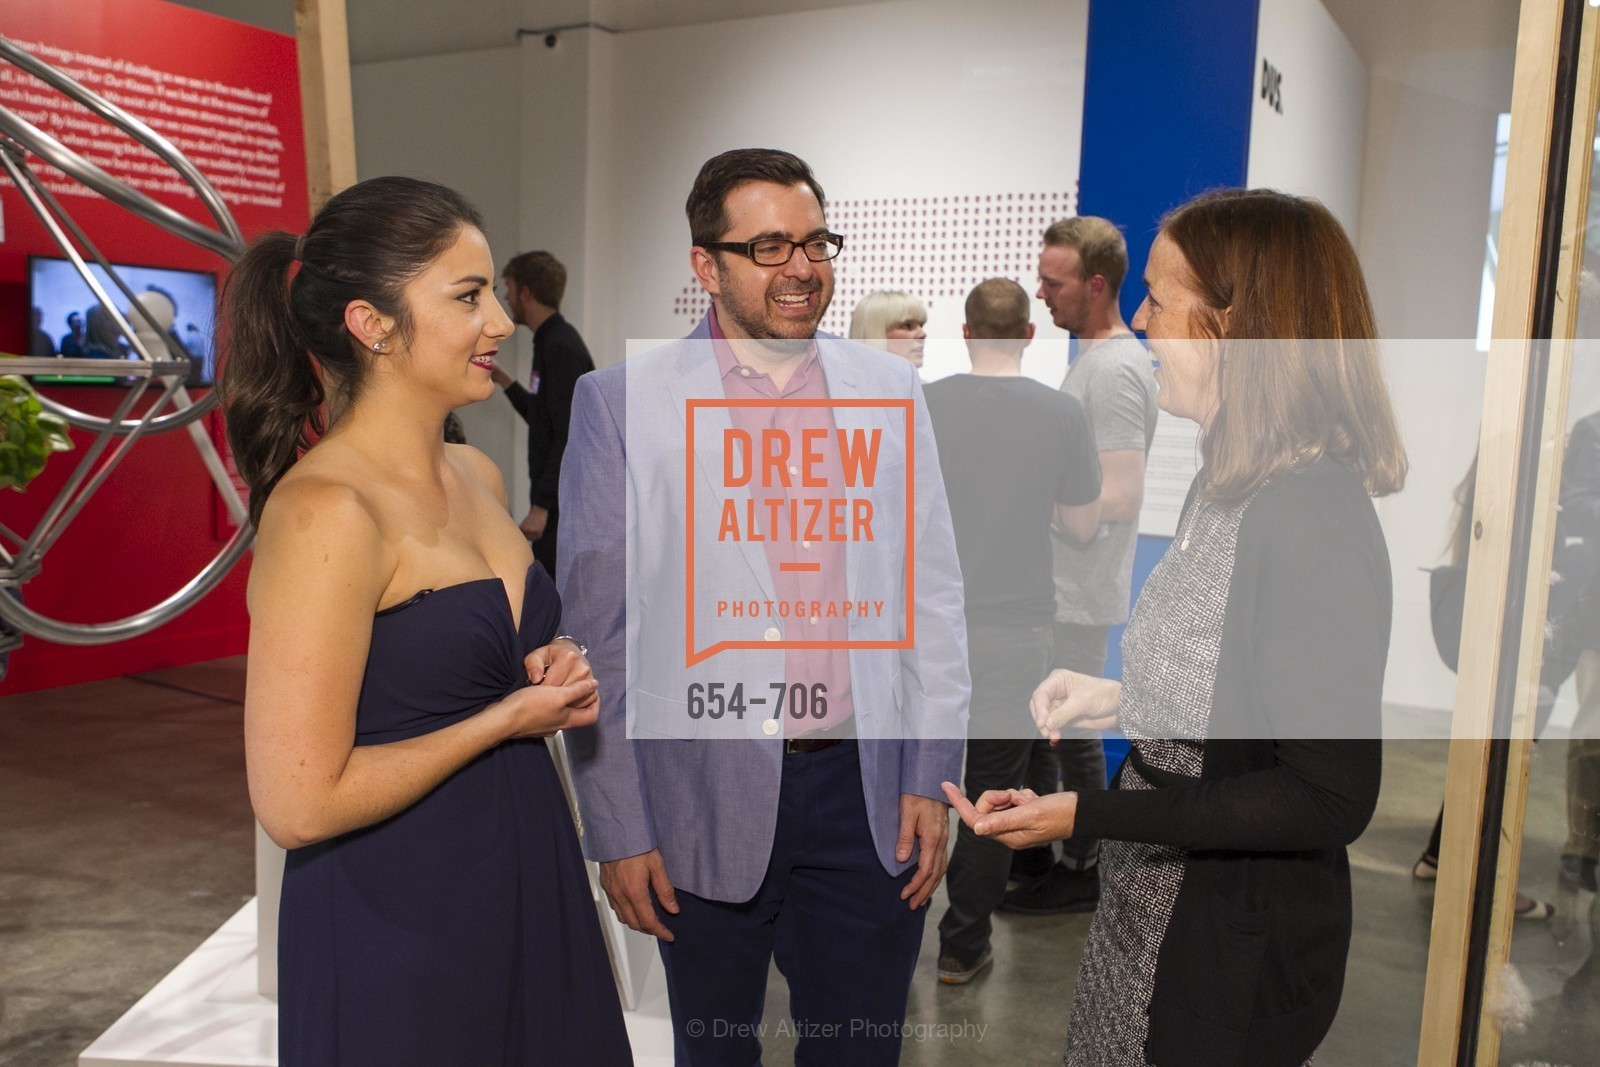 Sara Dermody, Lawrence Mendenhall, Sandra Keeley, Exhibit Opening at the MUSEUM OF CRAFT AND DESIGN - Hands Off: New Dutch Design at the Confluence of Technology & Craft, US, May 7th, 2015,Drew Altizer, Drew Altizer Photography, full-service agency, private events, San Francisco photographer, photographer california